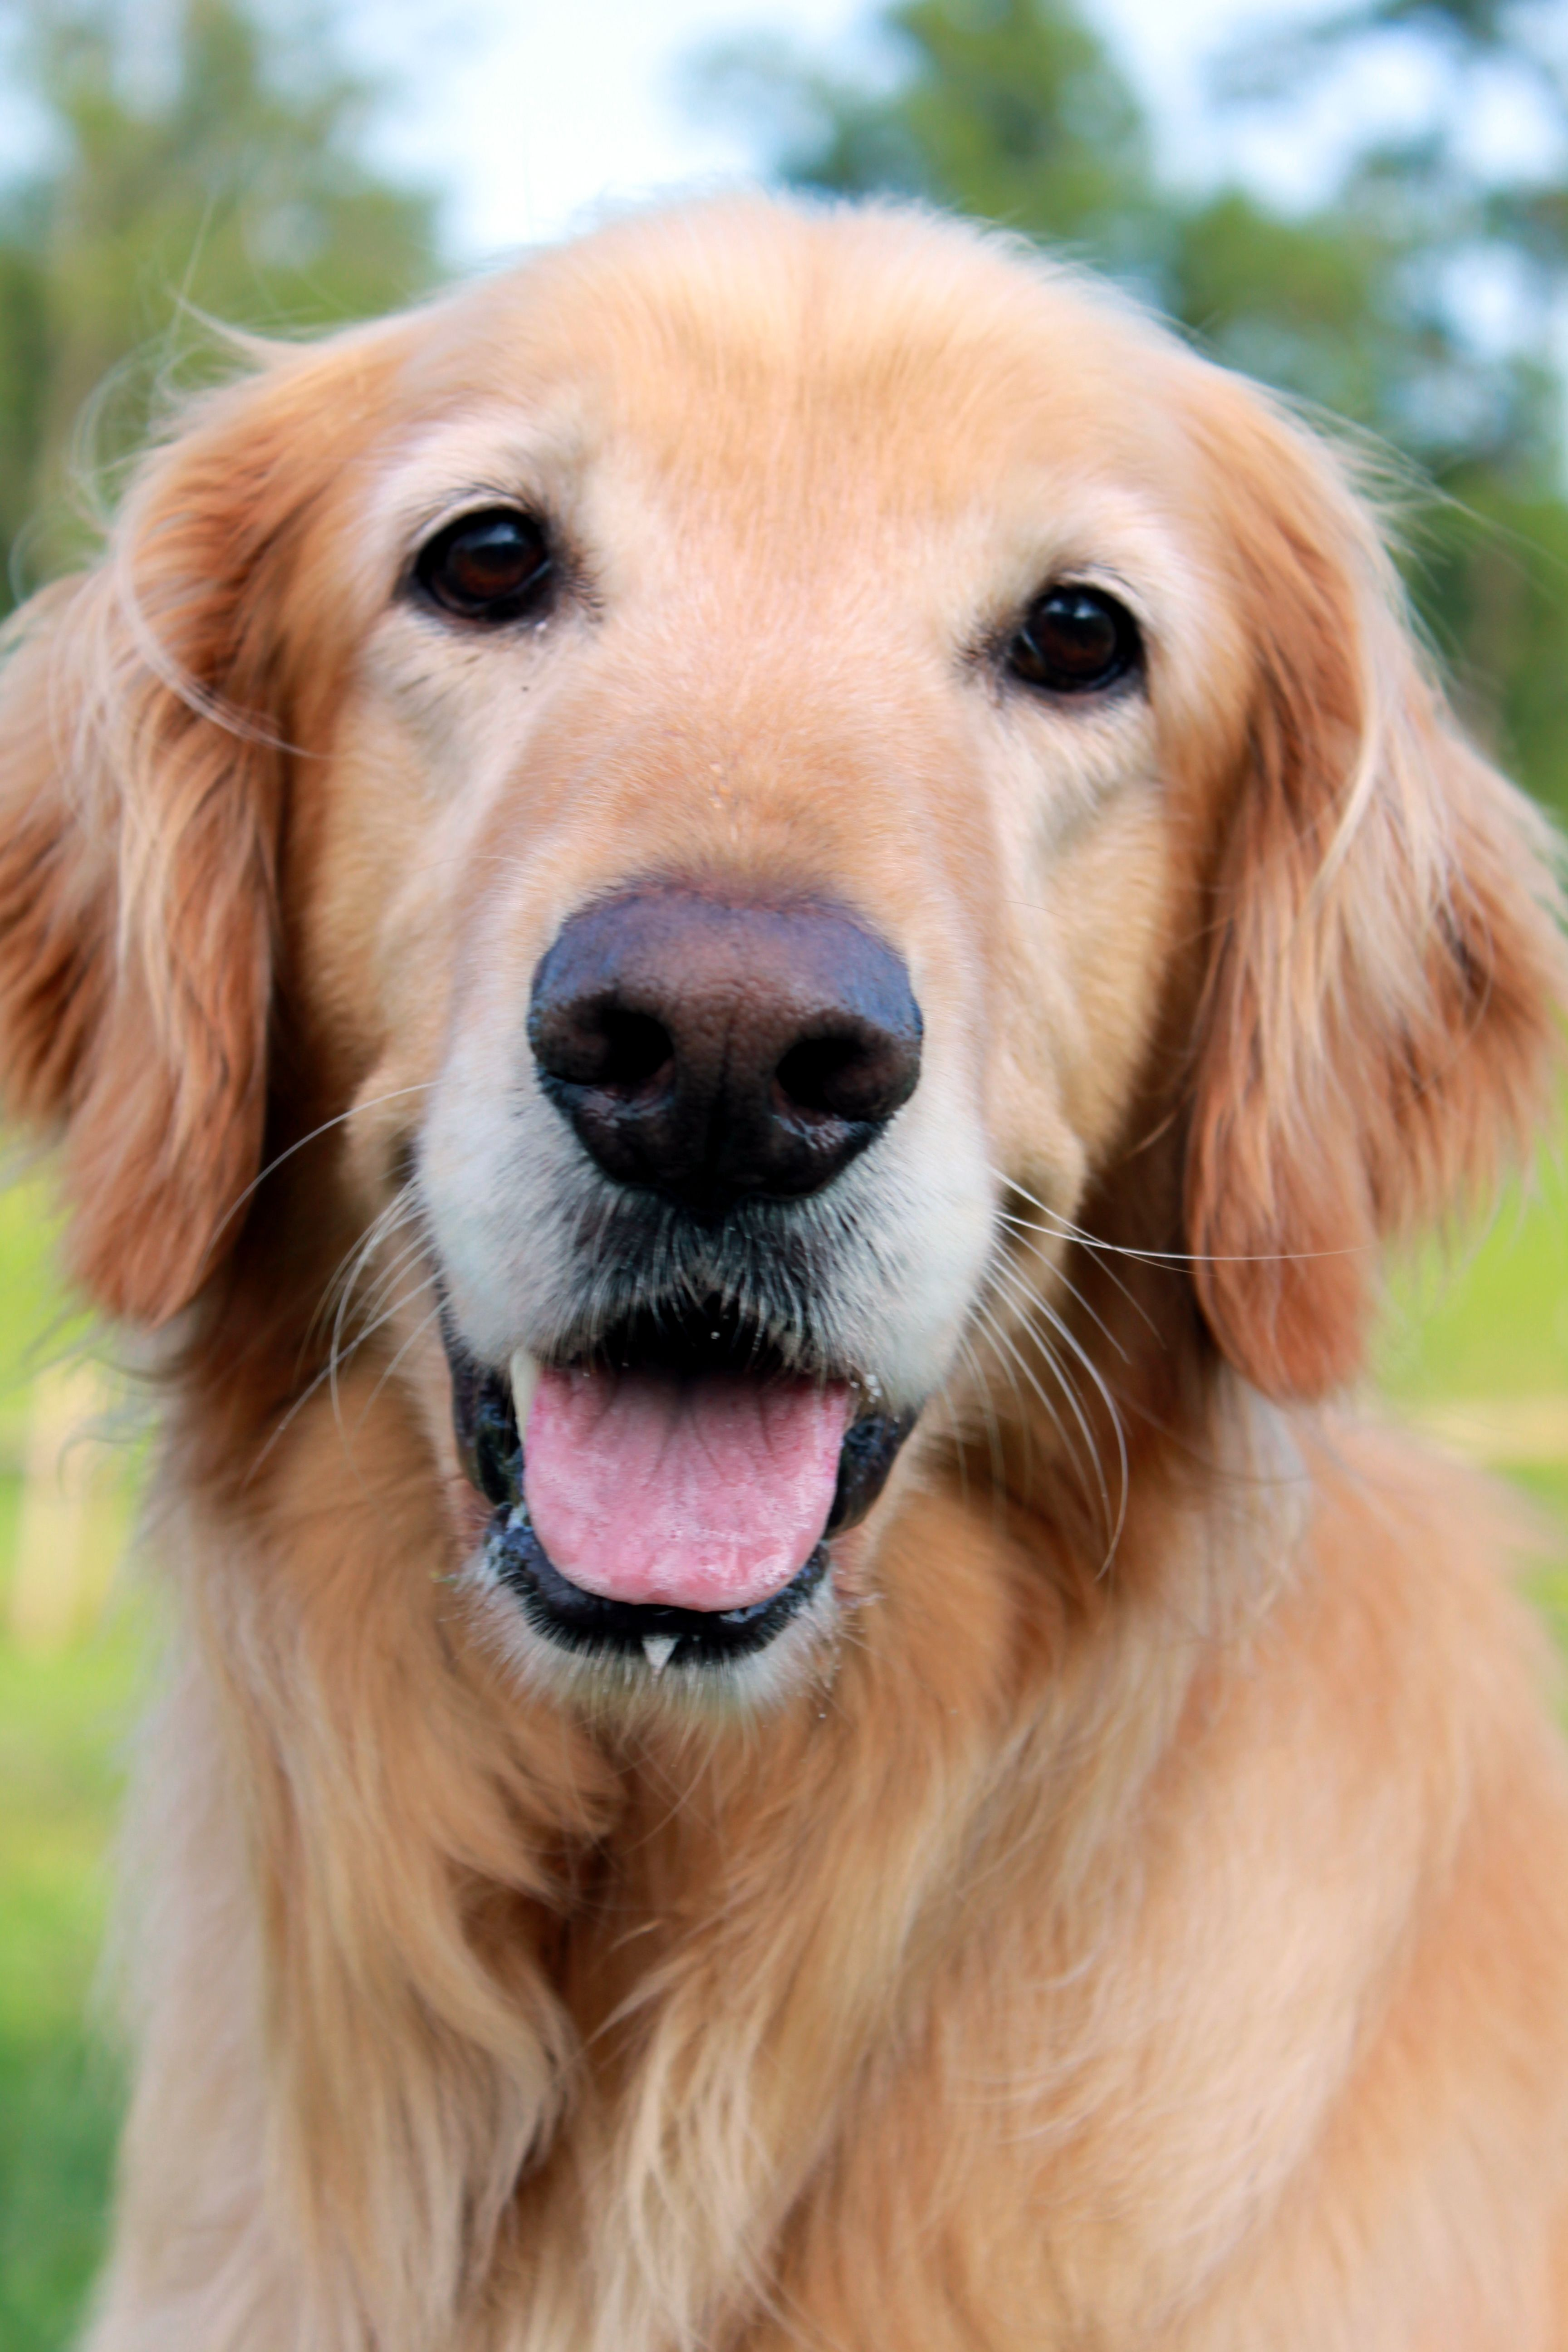 Goldens will always hold a special place in my heart. A place that melts often due to their cuteness.